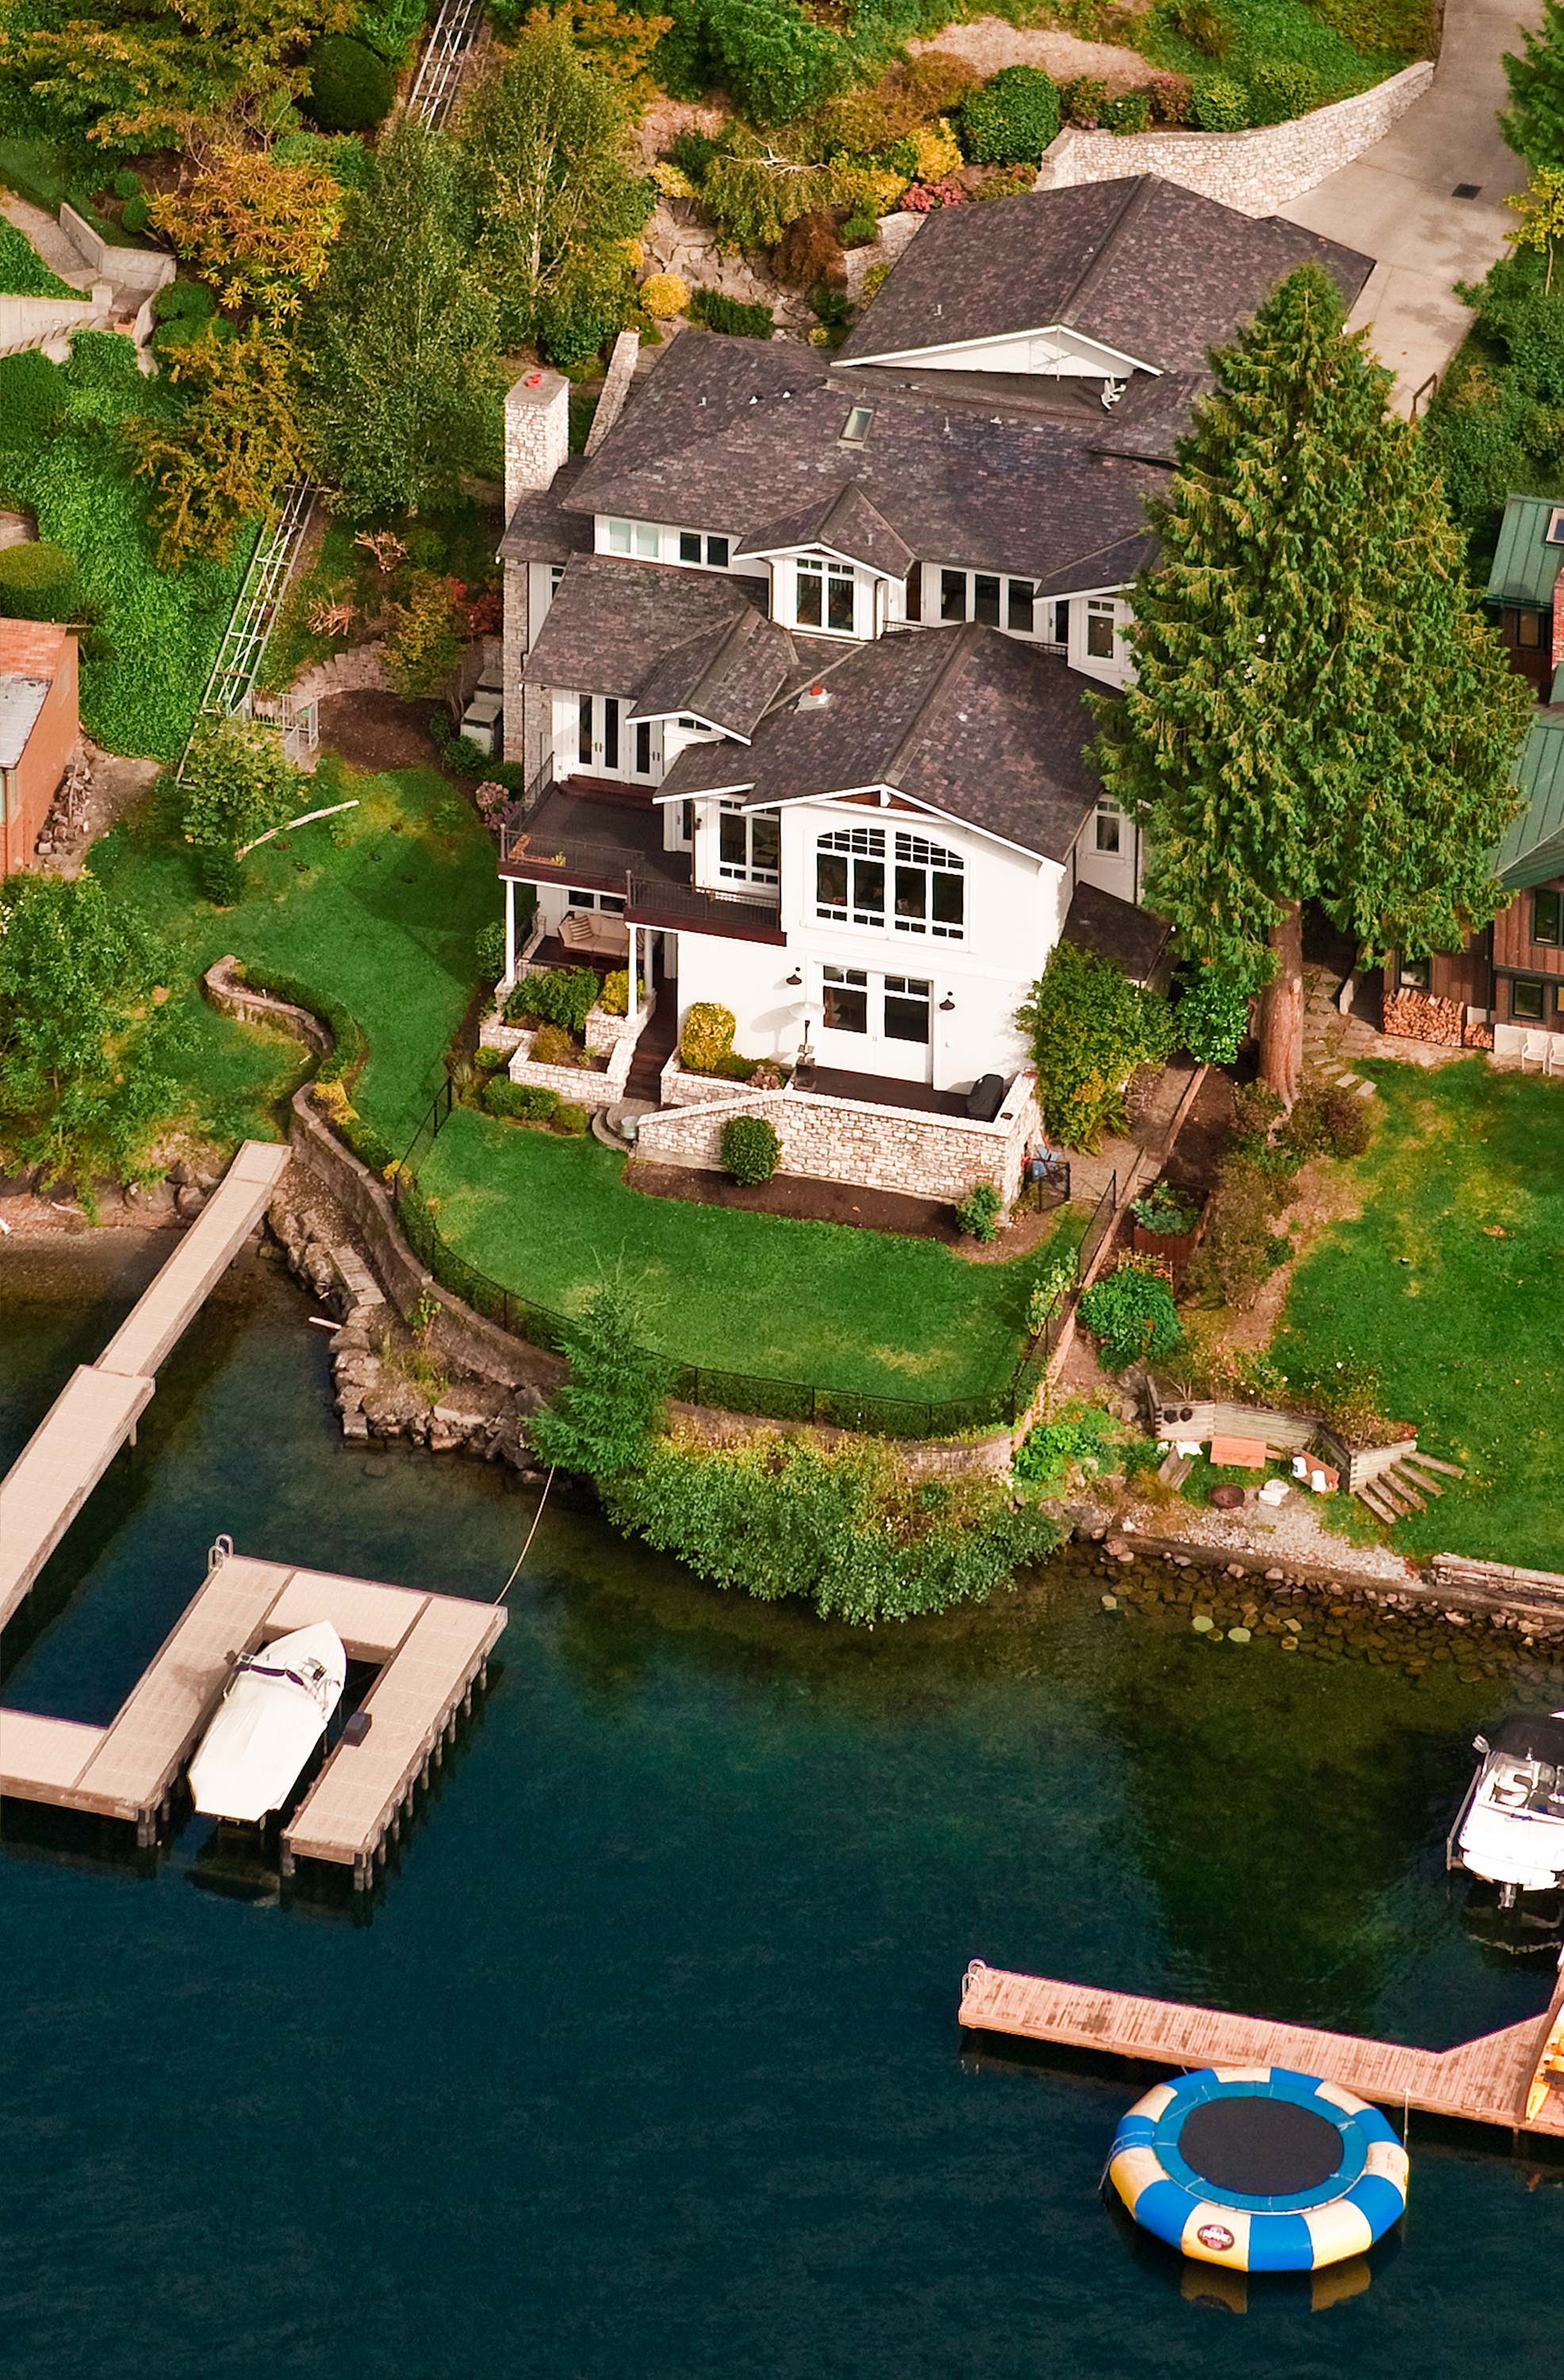 Waterfront home design by Seattle architecture firm TCA Architecture